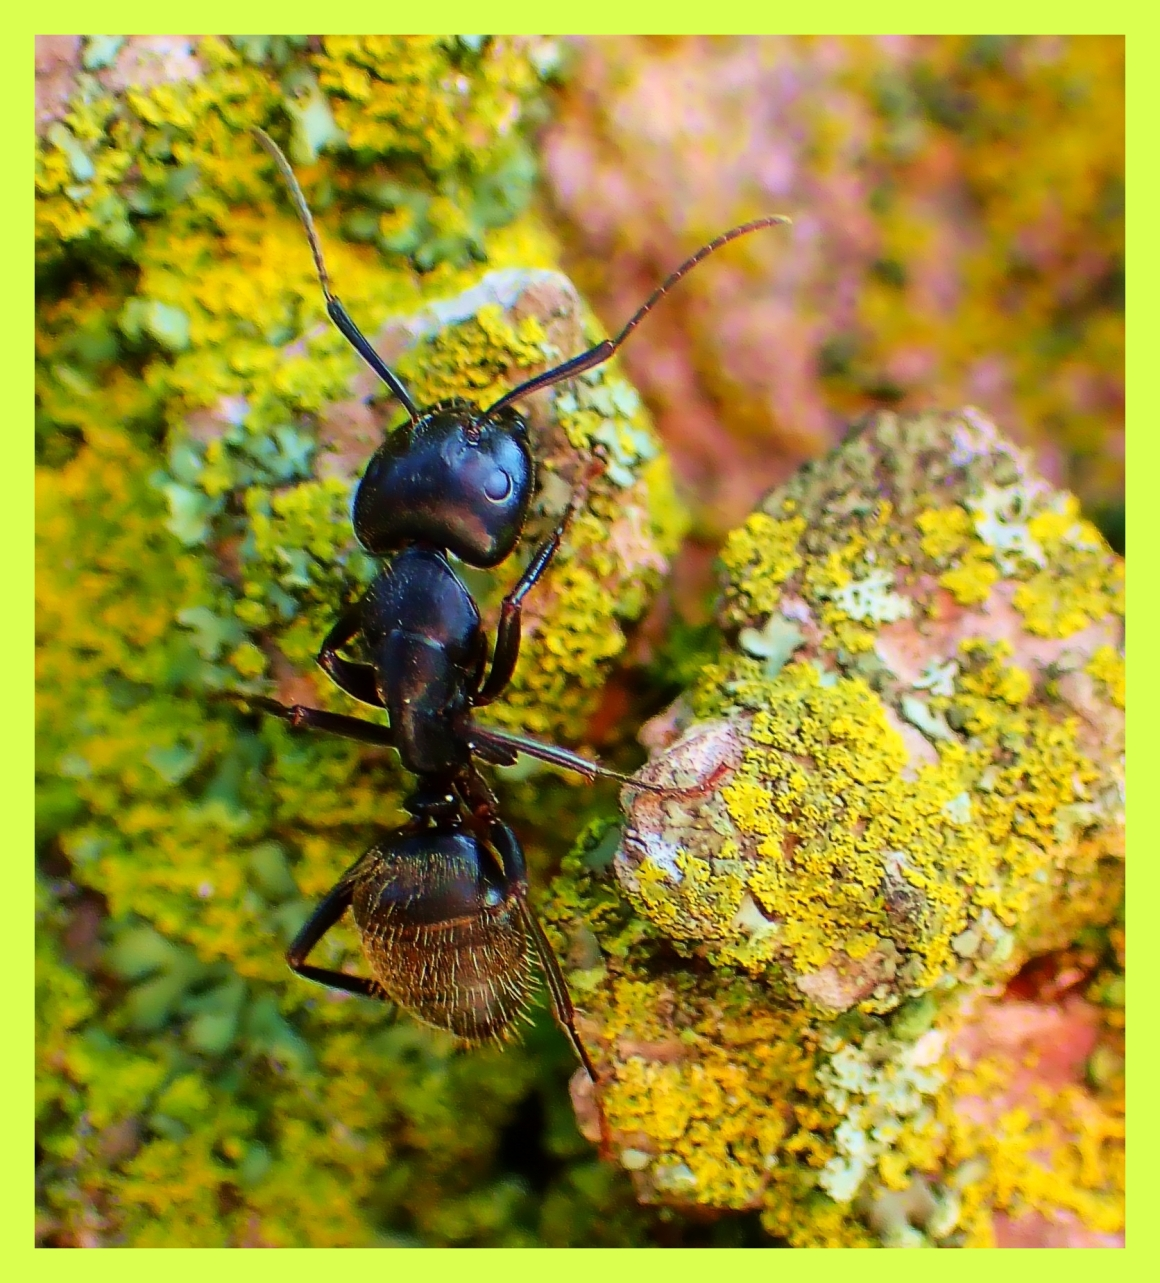 Ant on Lichen. Photo by Thomas Peace c. 2015